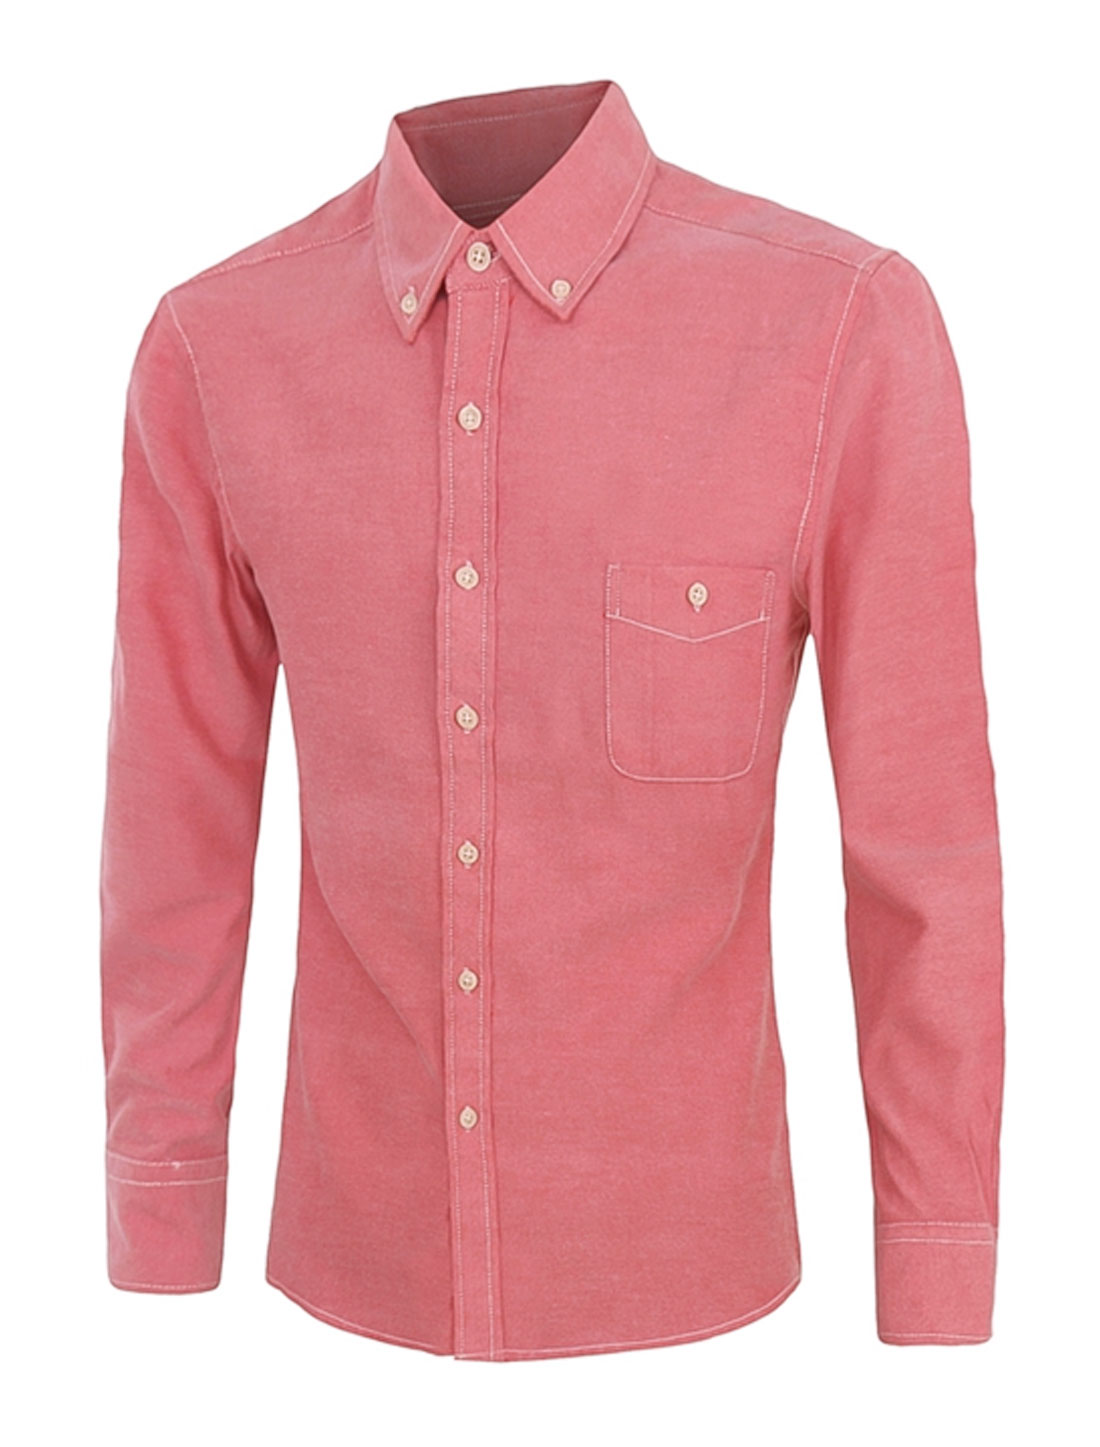 Men Long Sleeves Single Breasted Buttoned Pocket Shirt Pink M